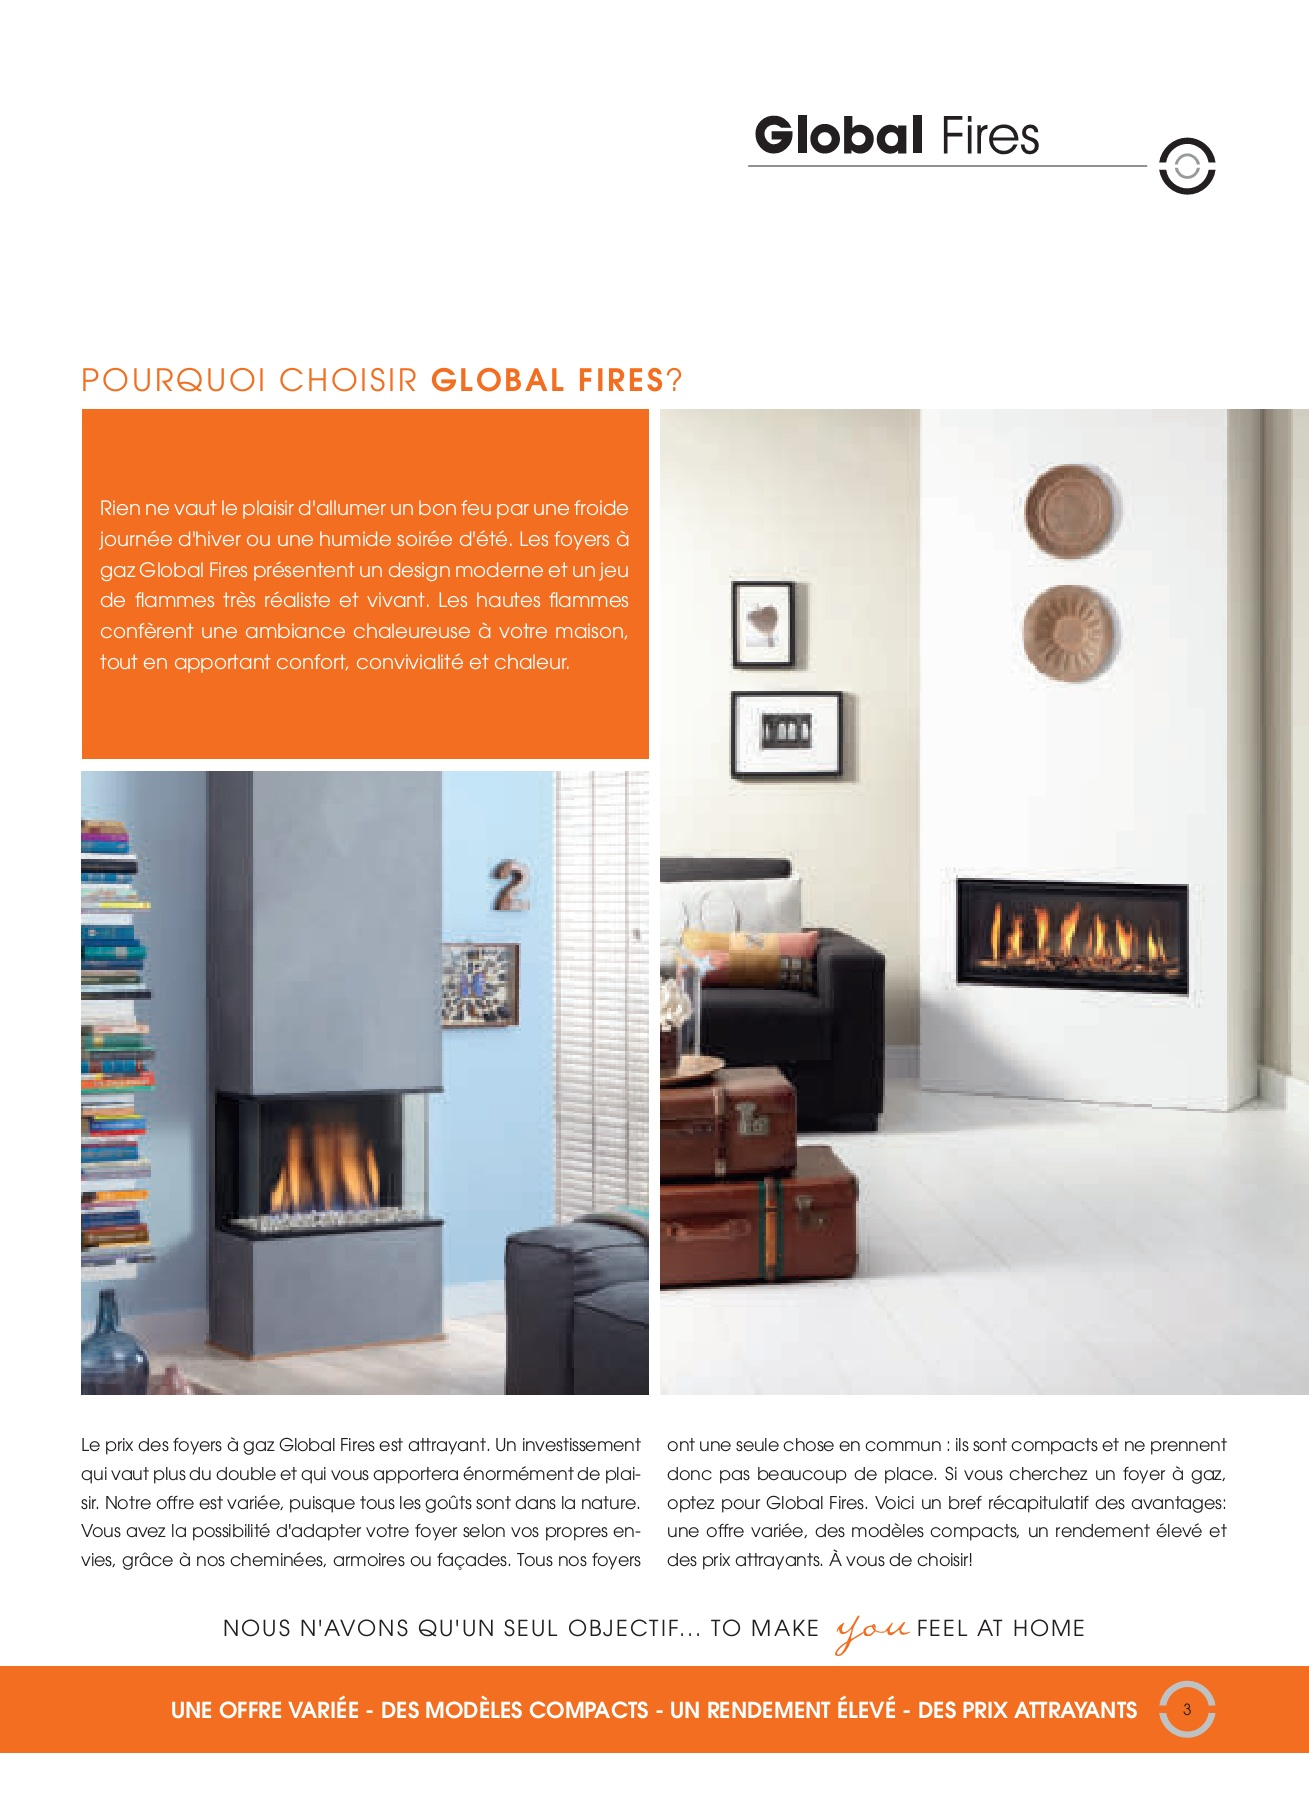 Foyers Et Insert Gaz Global Pages 1 32 Text Version Anyflip